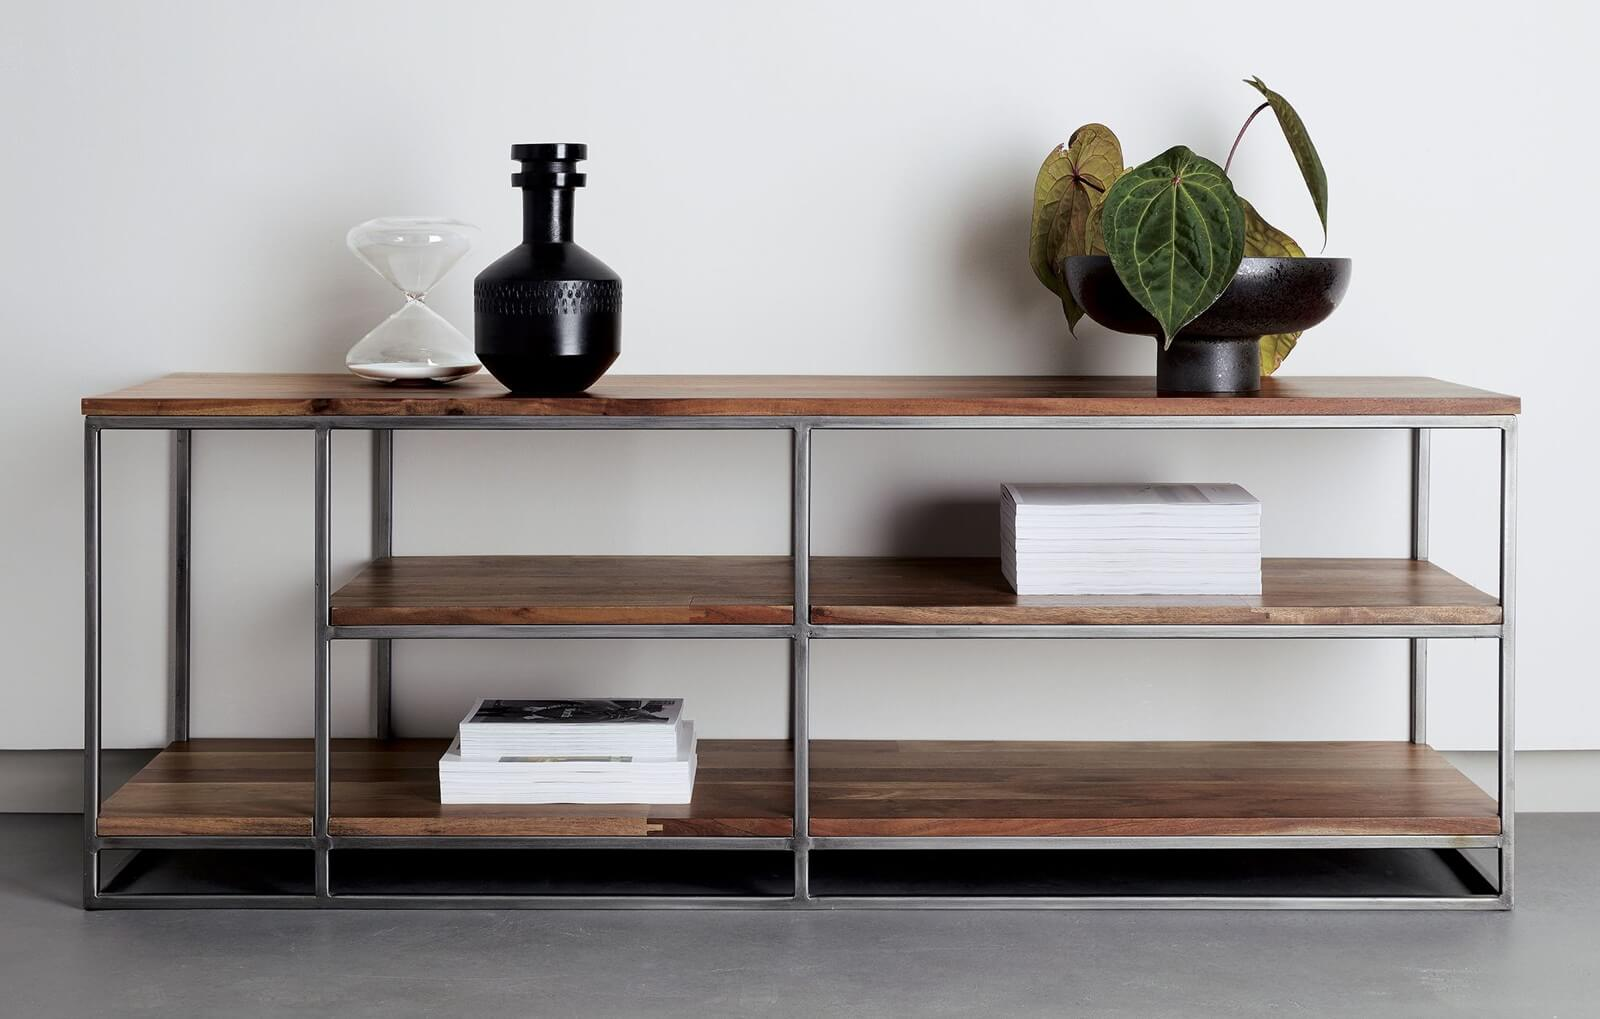 Smart, stylish home storage options